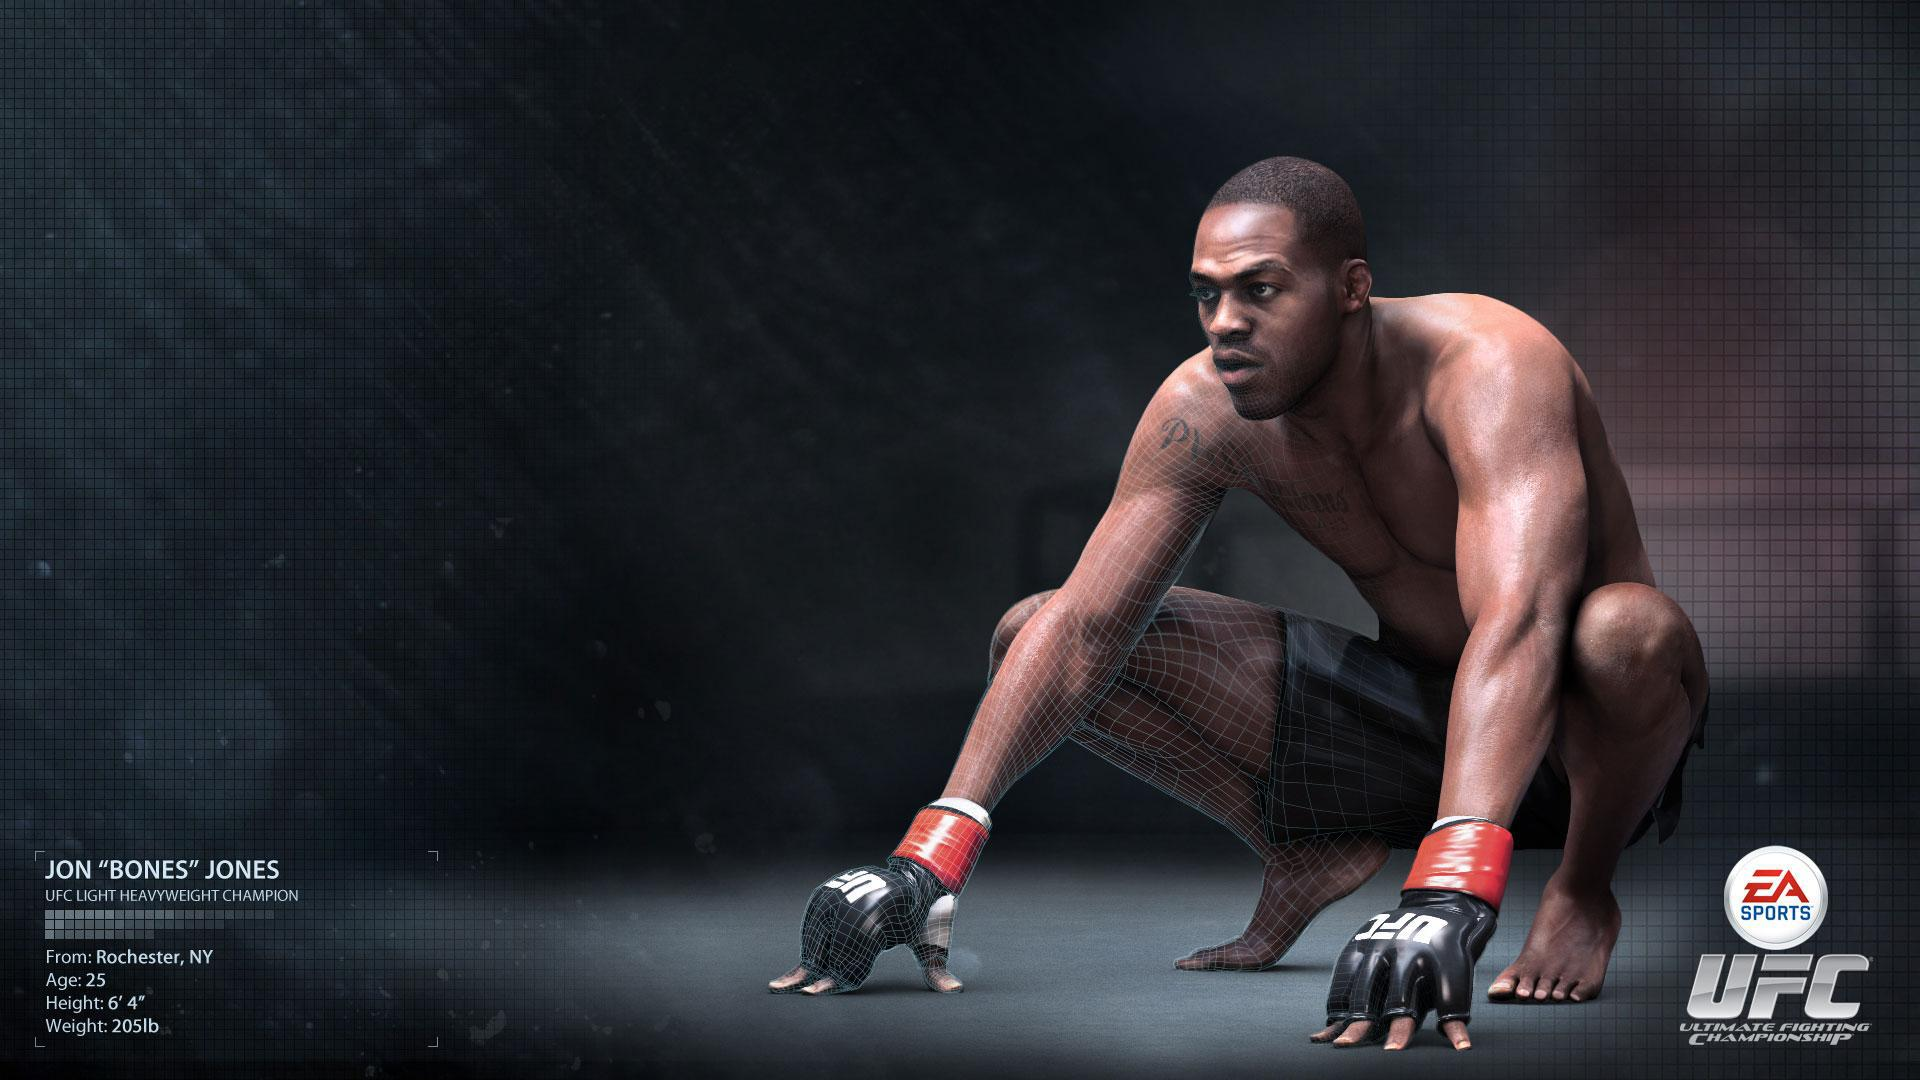 UF CHAMPION UFC Fighter Jon Jones wallpapers and images 1920x1080